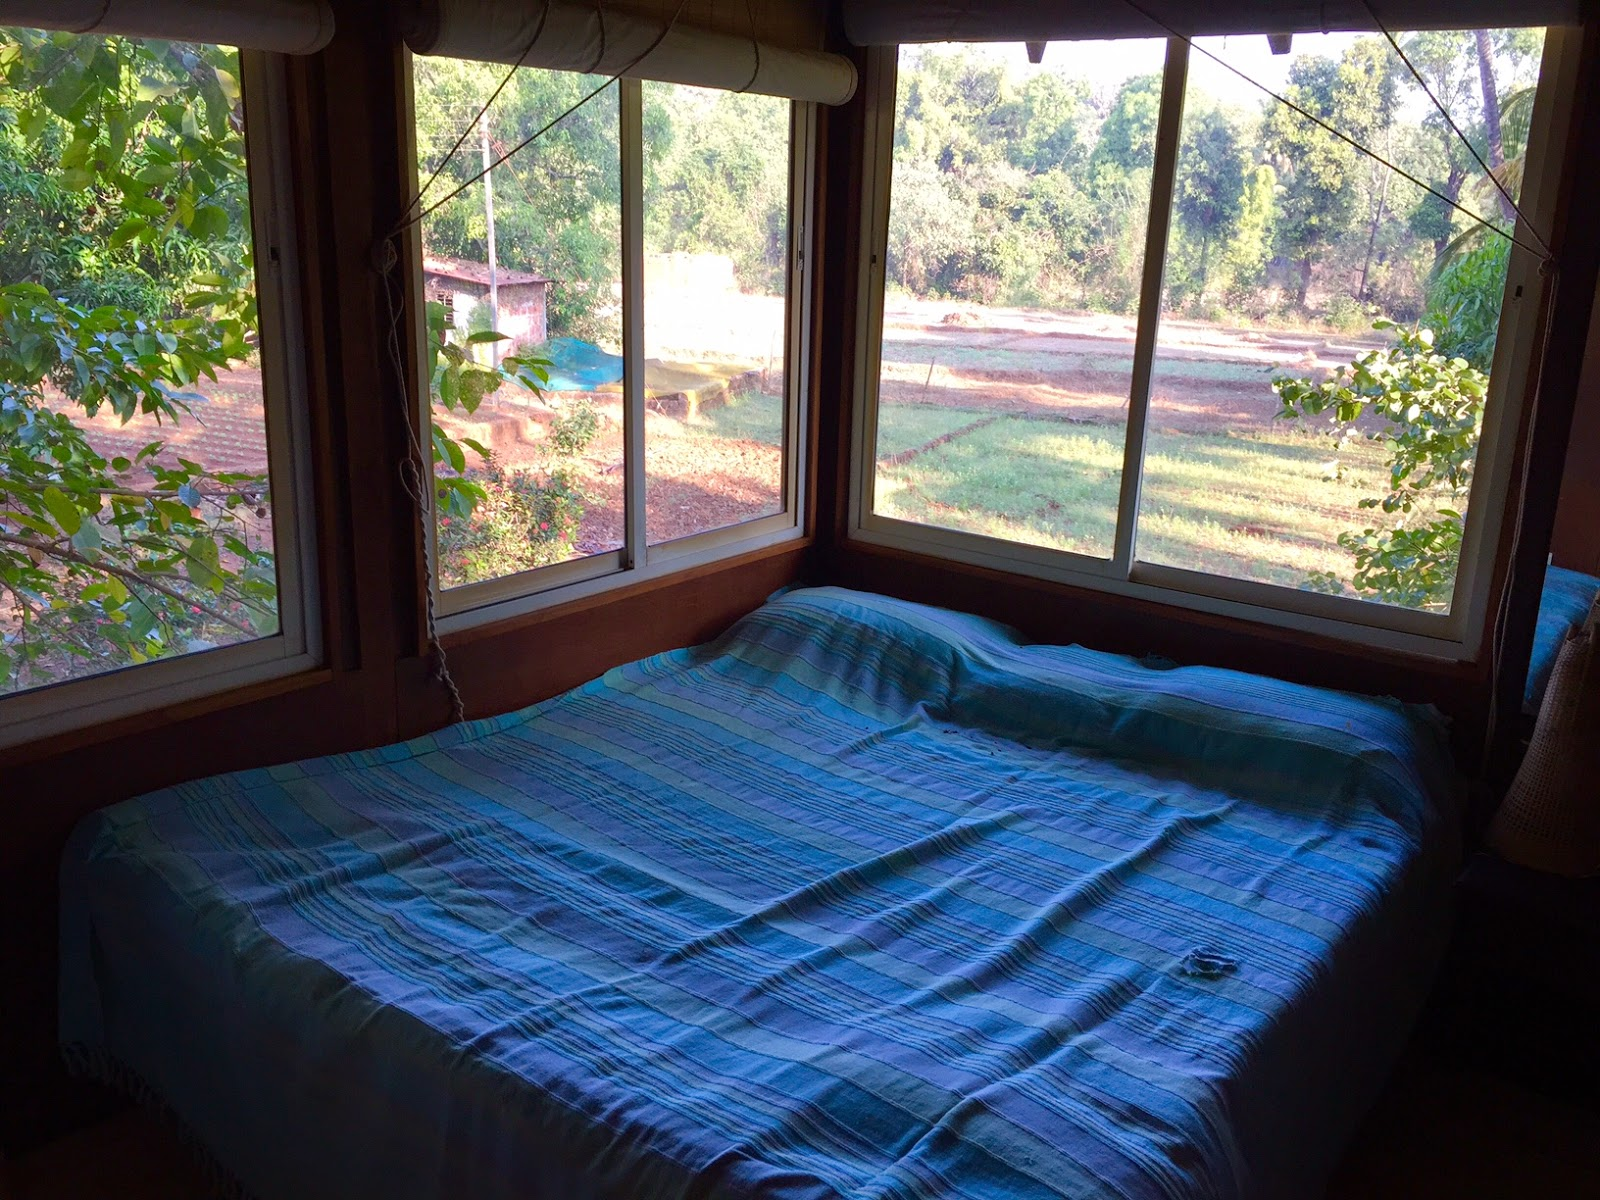 Atithi Parinay Homestay review Konkan Room Hut Treehouse